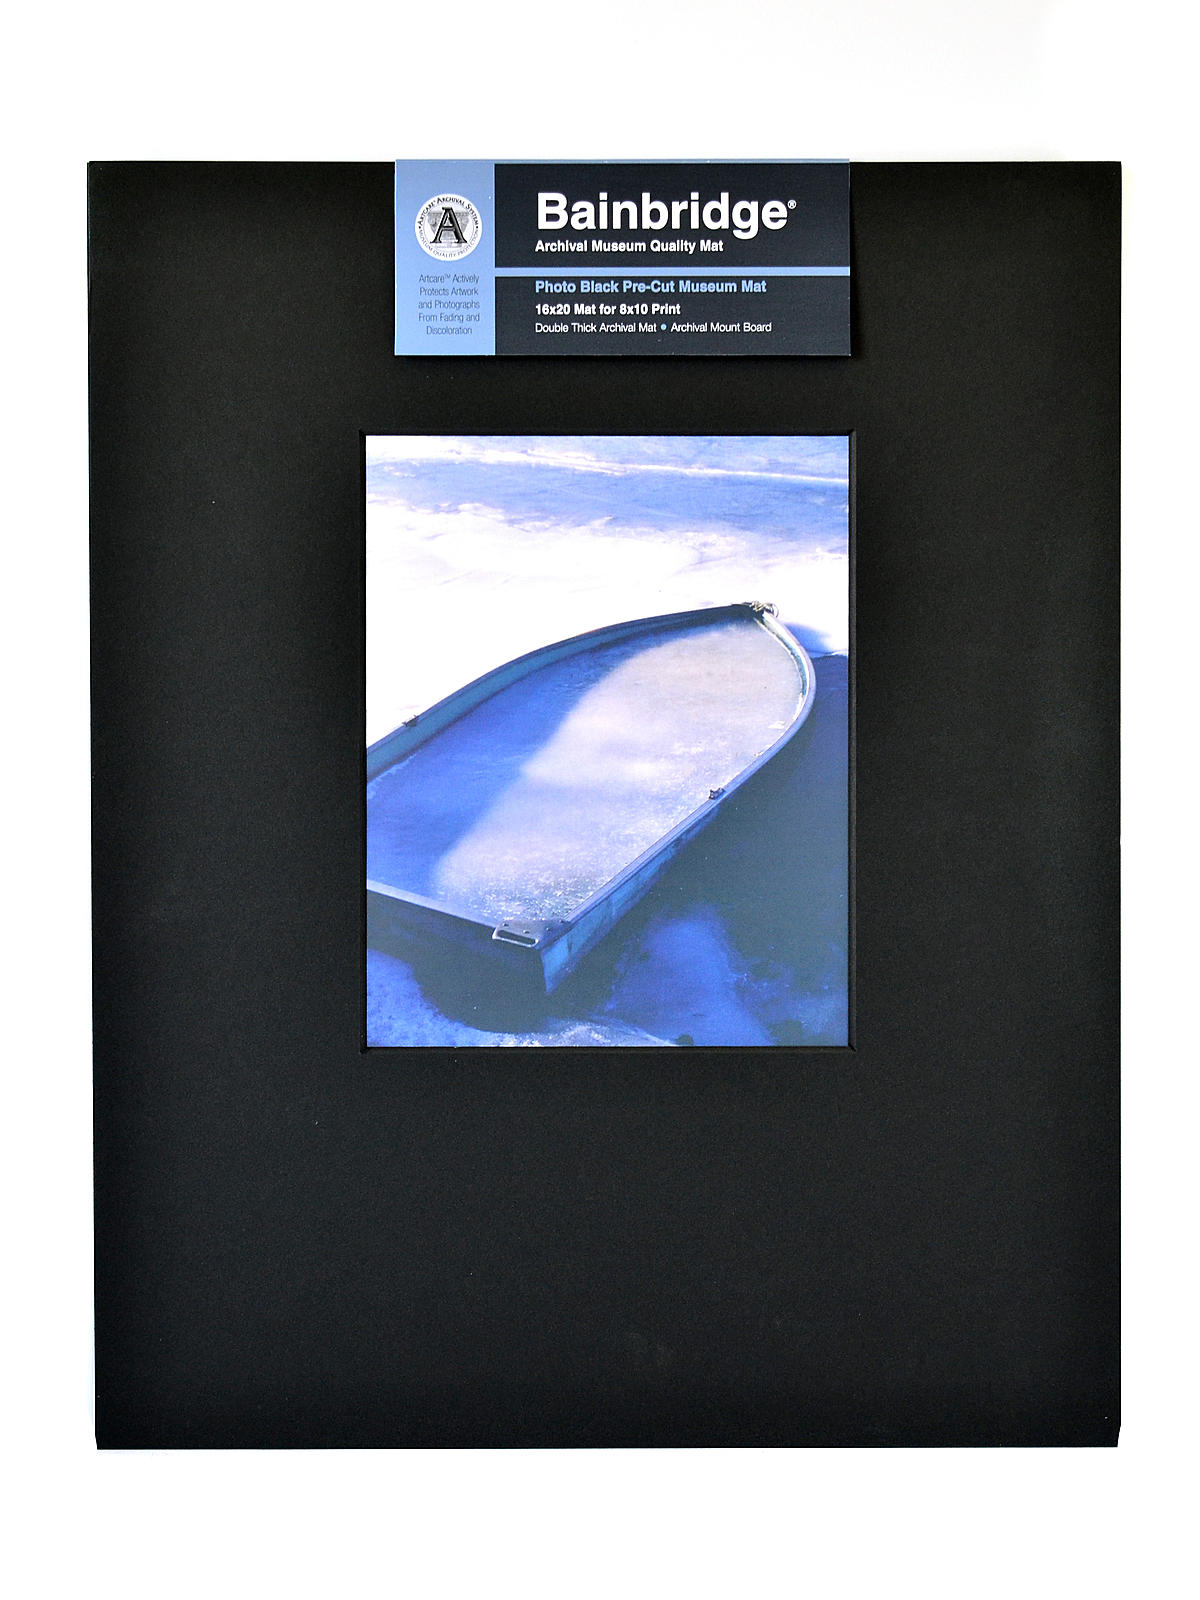 Archival Museum Quality Mat 16 in. x 20 in. portrait for 8 in. x 10 in. black